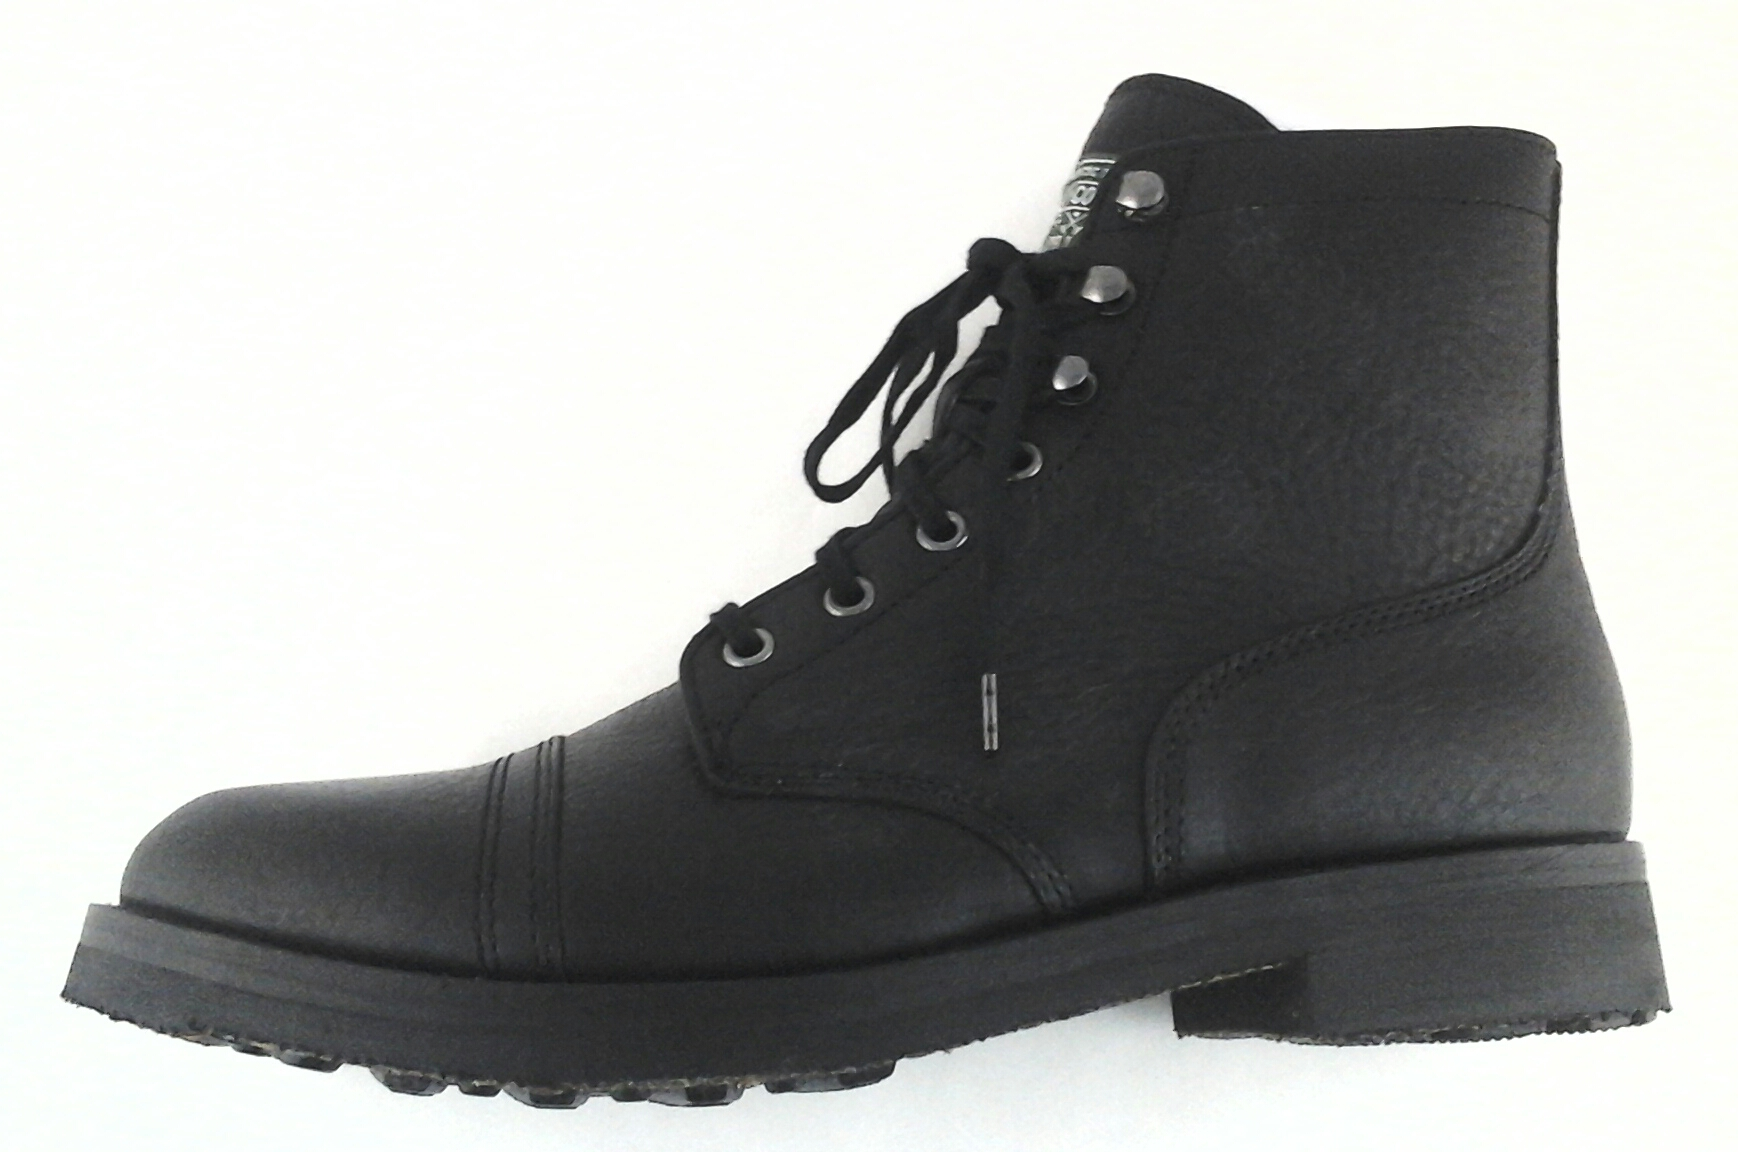 16a13ca99cce6 Details about Polo Ralph Lauren Enville Cap-Toe Lace Up Boot Black Leather  US 10.5 US 12 New